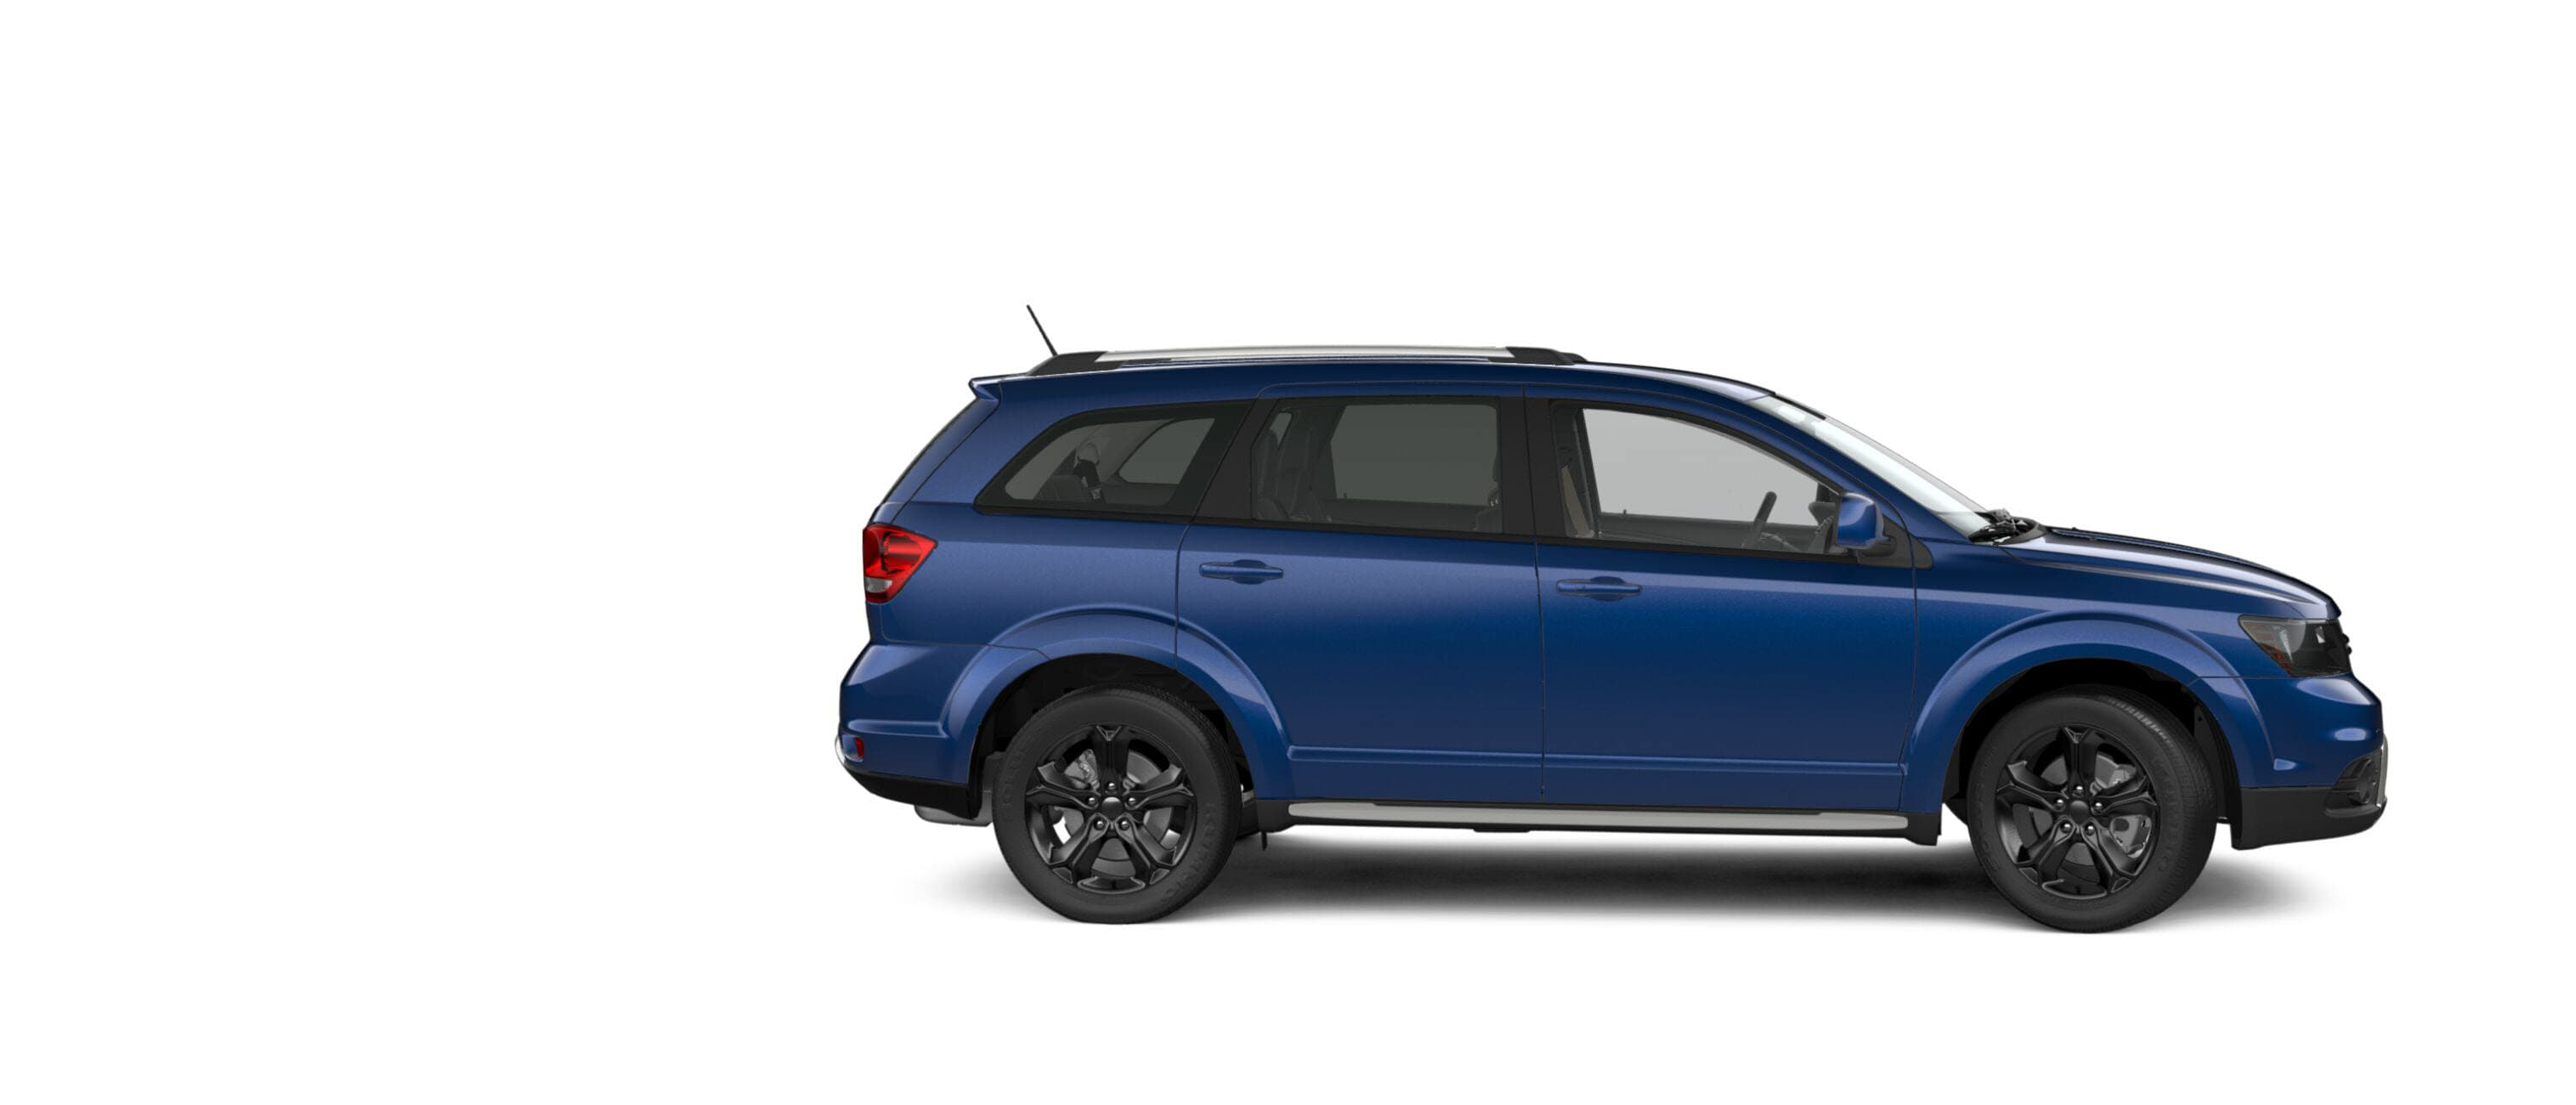 2018 Dodge Journey Review Bloomington IL